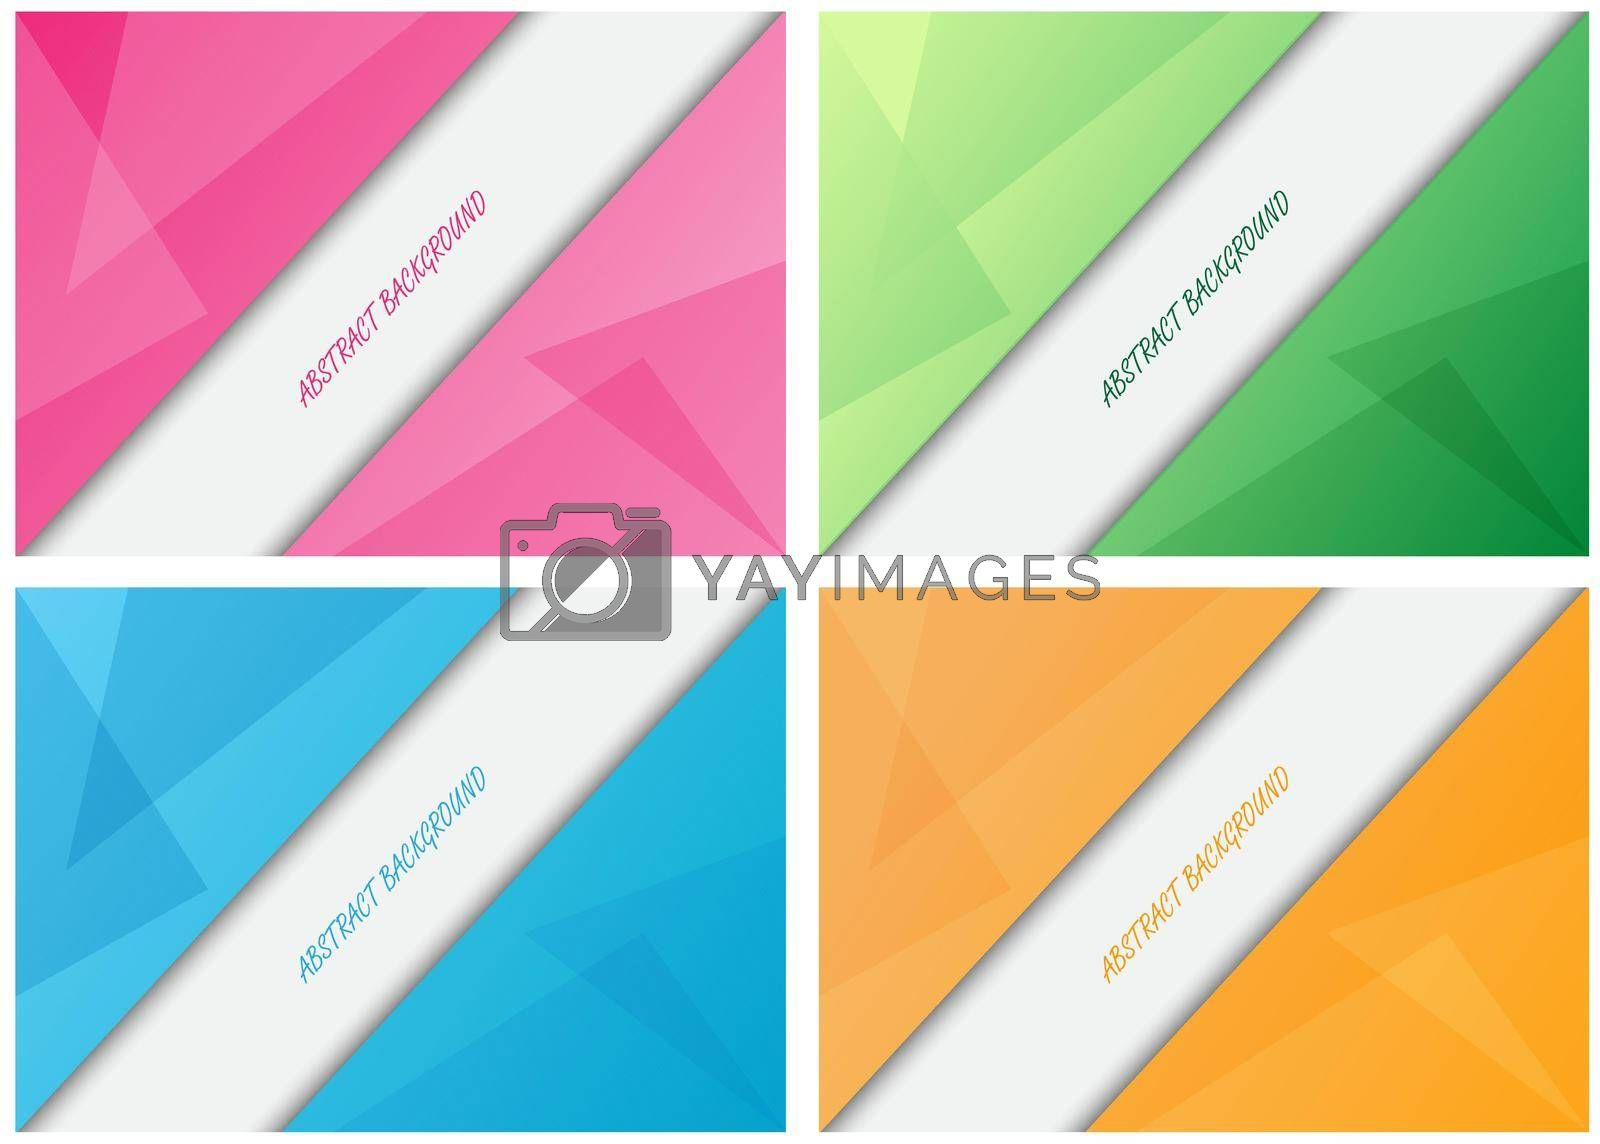 A set of colorful backgrounds for posters, banners, postcards and creative design. Stock vector illustration.